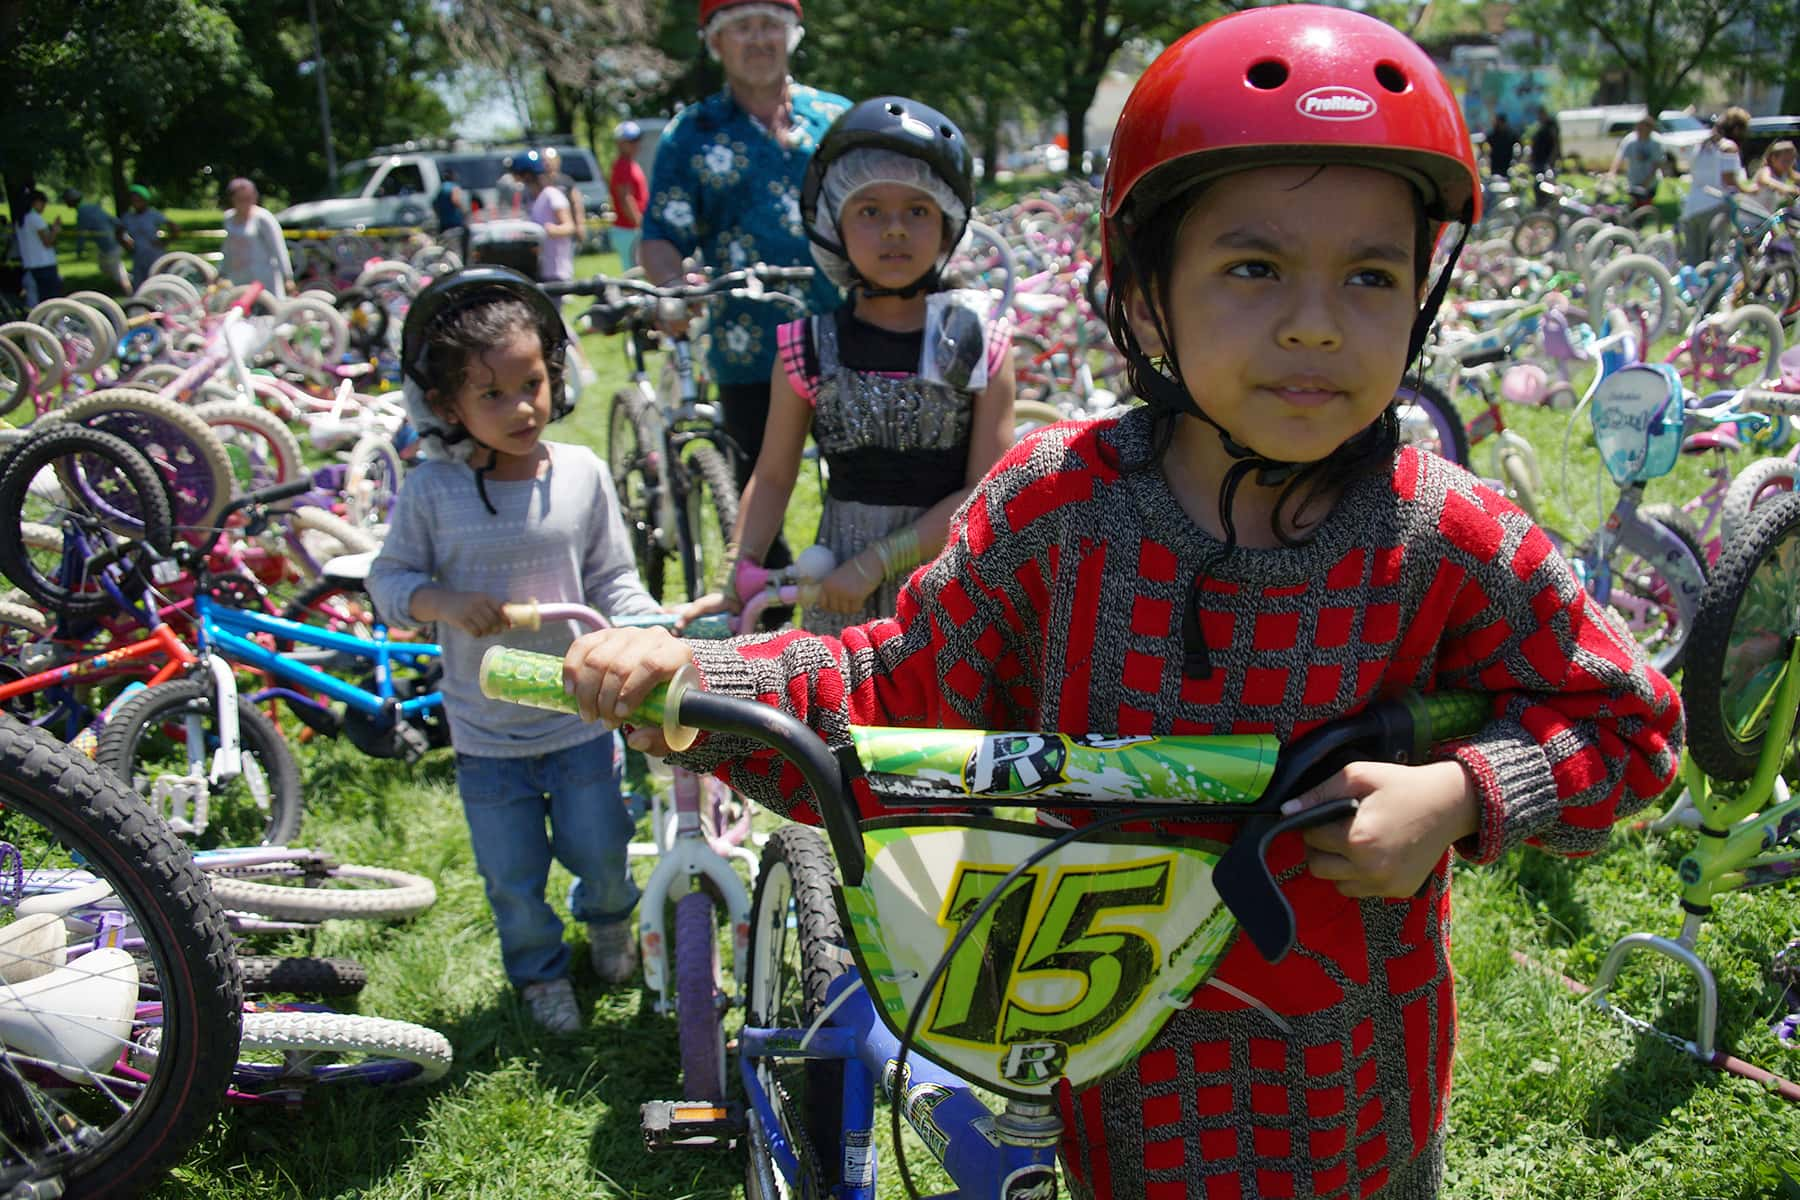 Southside Bicycle Day brings hundreds of free bikes and